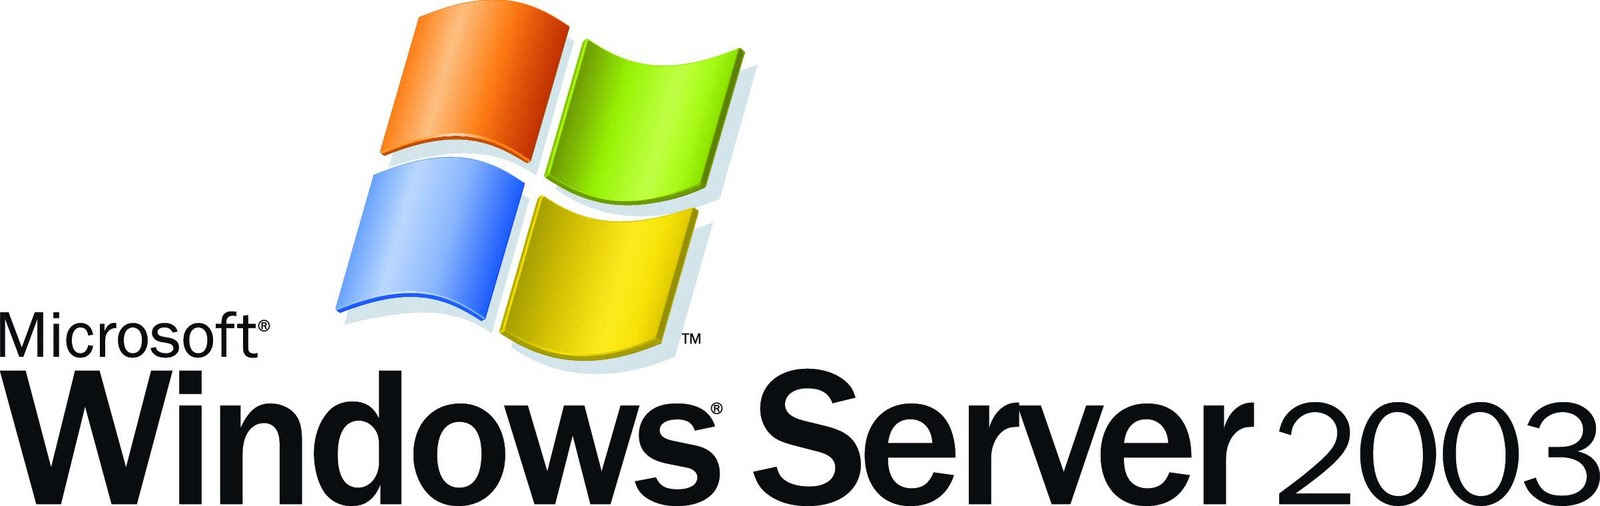 Wiblack Os Server 2003 Sp2  Wwwwiblackoscom. Music And Sound Recording Degree. Laser Spine Surgery Video Free Online Servers. Learning Computer Science Online. Financial Credit Services Clearwater Fl. Financial Planning For Physicians. Internet Providers In Warner Robins Ga. Sharepoint Hosting Providers. Colleges That Specialize In Music